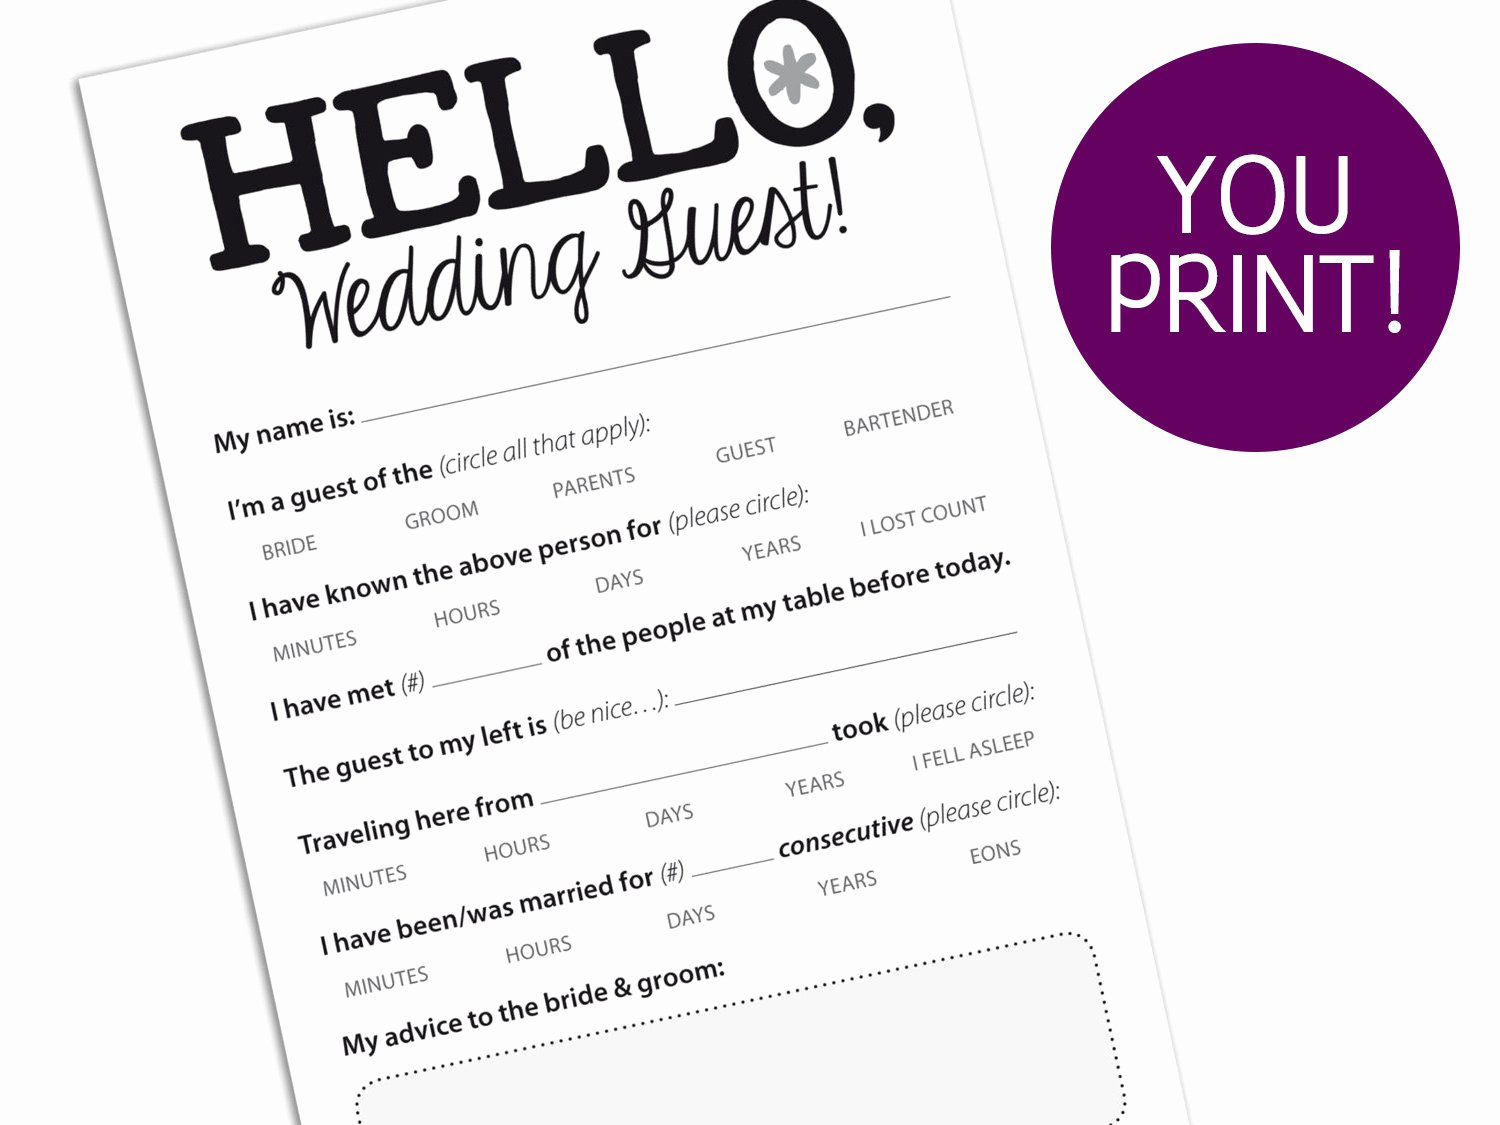 Wedding Advice Cards Funny Fresh Funny Marriage Advice Card for Wedding Reception Printable